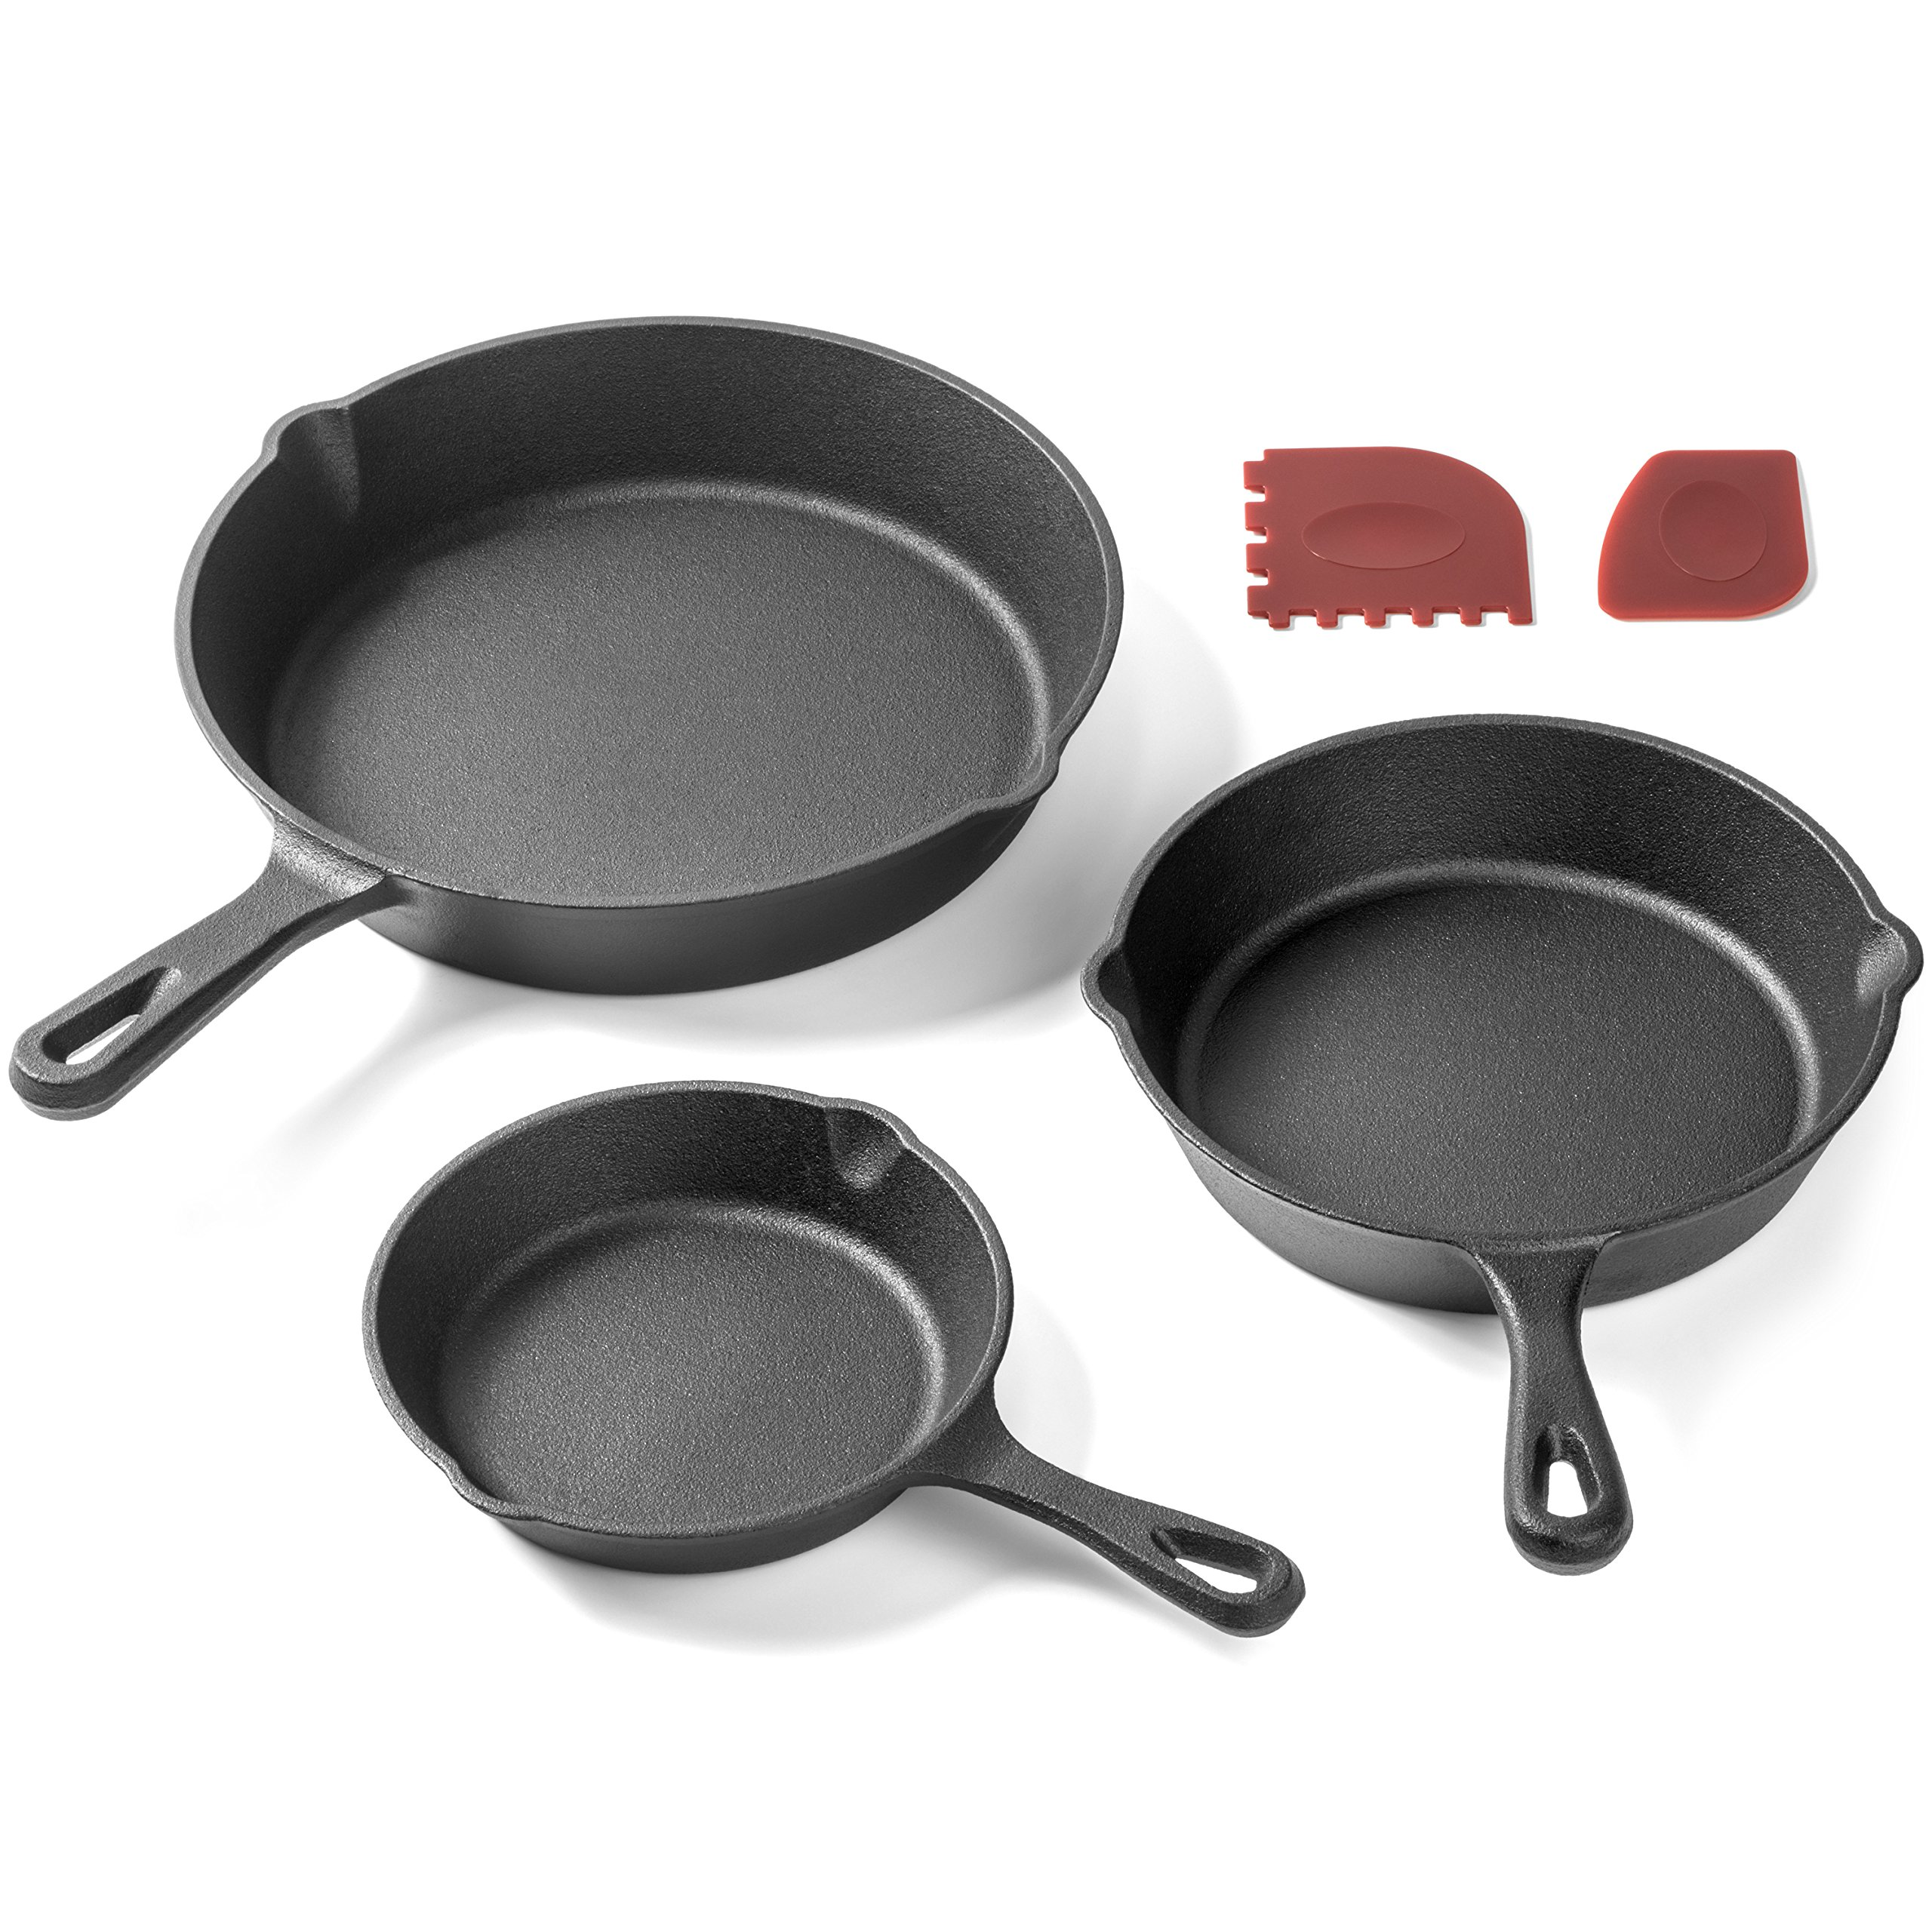 Pre-Seasoned Cast Iron Skillet 3 Piece Set (10, 8 inch & 6 inch Pans) Best Heavy Duty Professional Restaurant Chef Quality Pre Seasoned Pan Cookware For Frying, Saute, Cooking by Amsha Kitchen (Image #1)